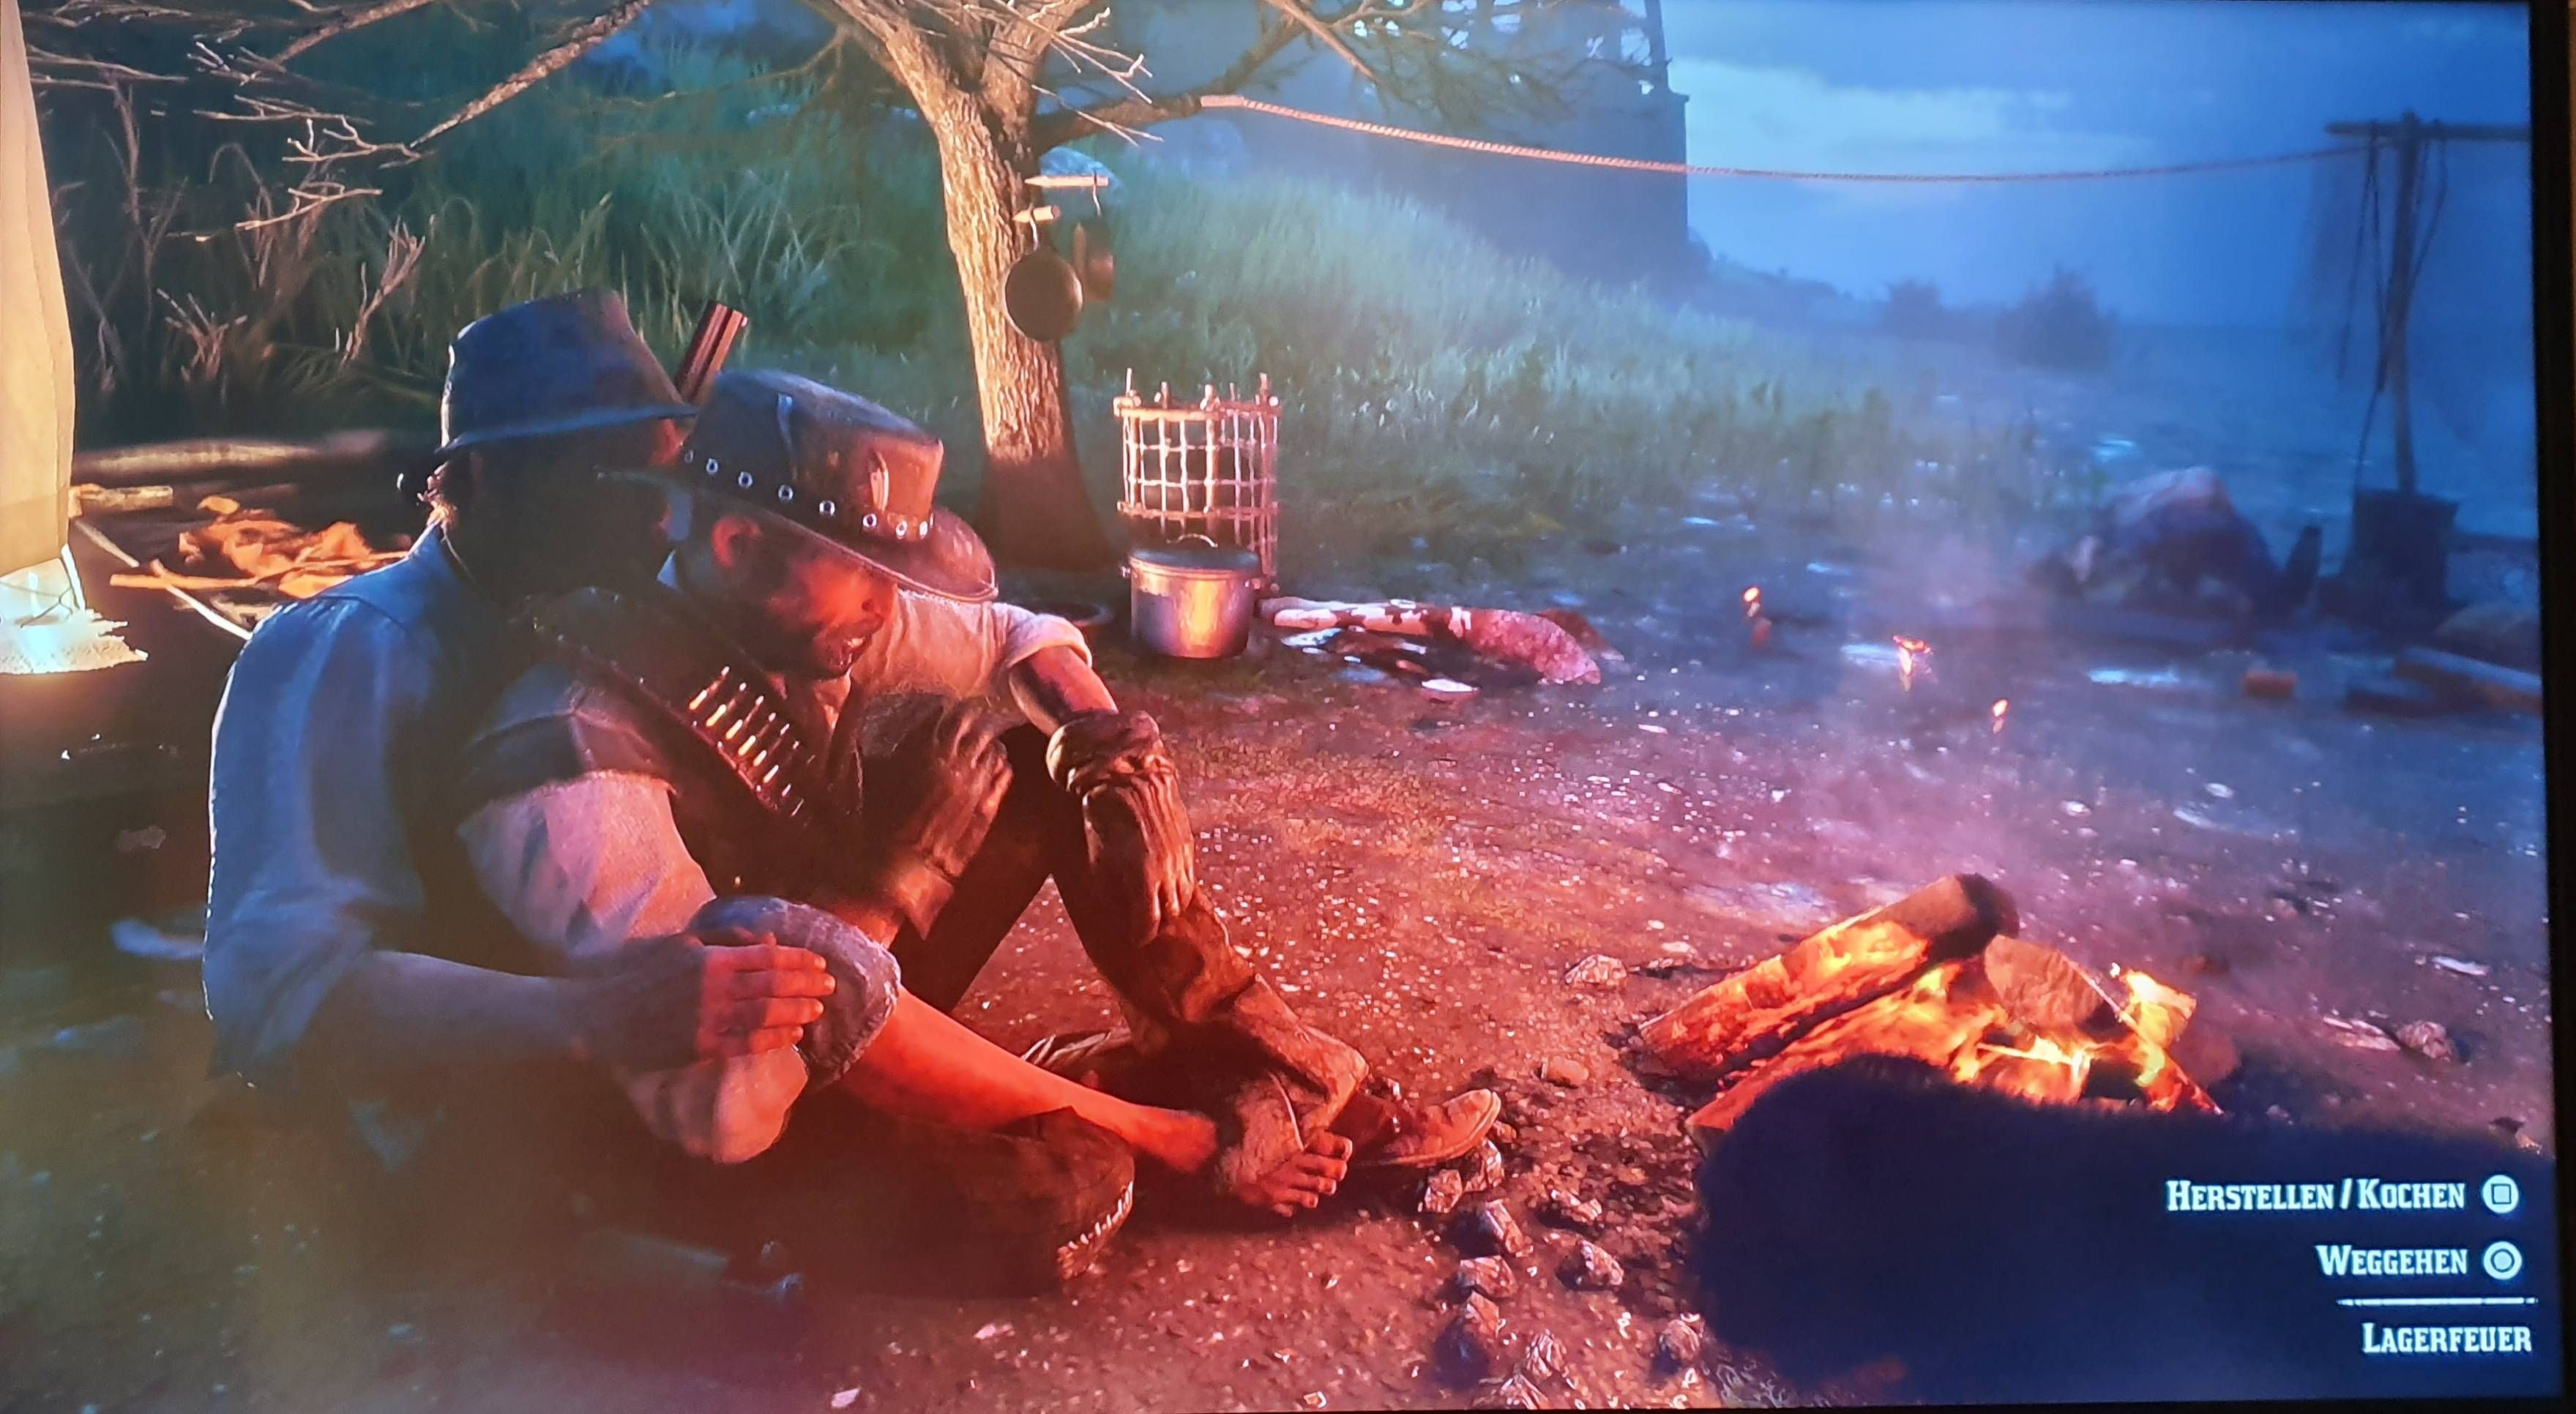 Due to a little bug in Red Dead Redemption 2, I sat on this strangers lap and received a lovely hug. Accidental *Brokeback Mountain* confirmed